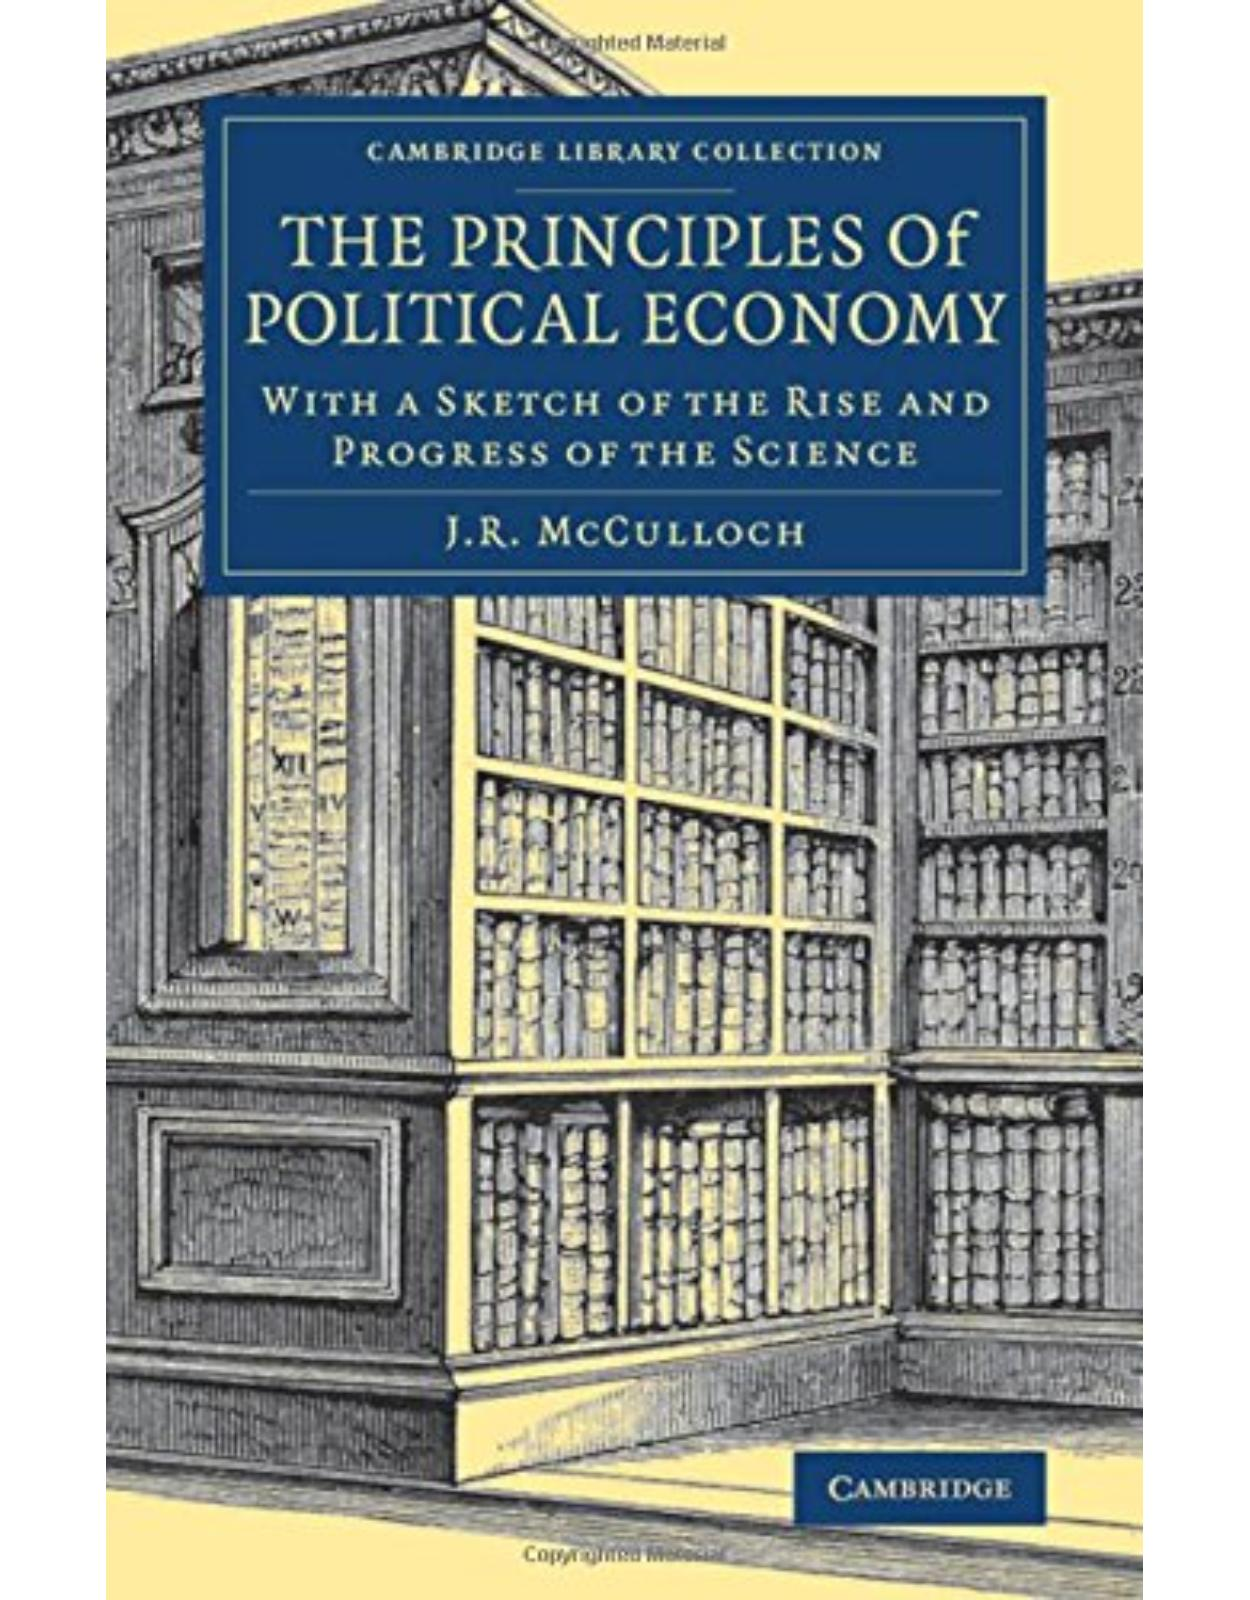 The Principles of Political Economy: With a Sketch of the Rise and Progress of the Science (Cambridge Library Collection - British and Irish History, 19th Century)